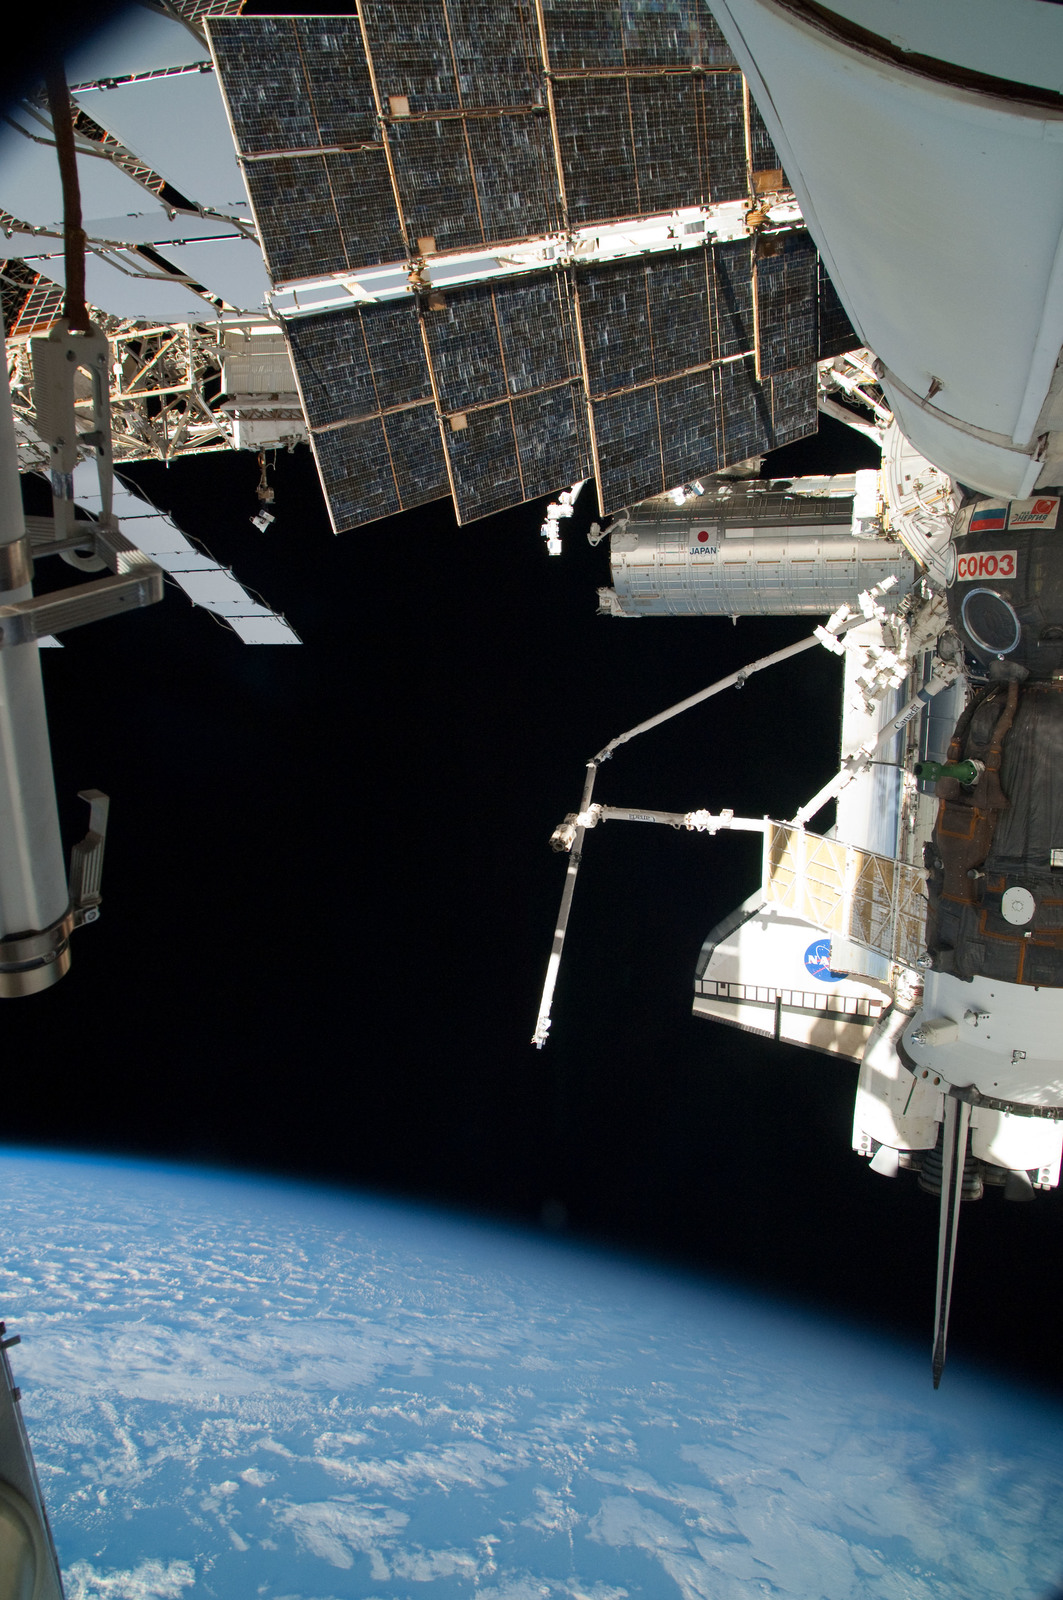 S126E025051 - STS-126 - View of ISS, Docked Soyuz and Endeavour